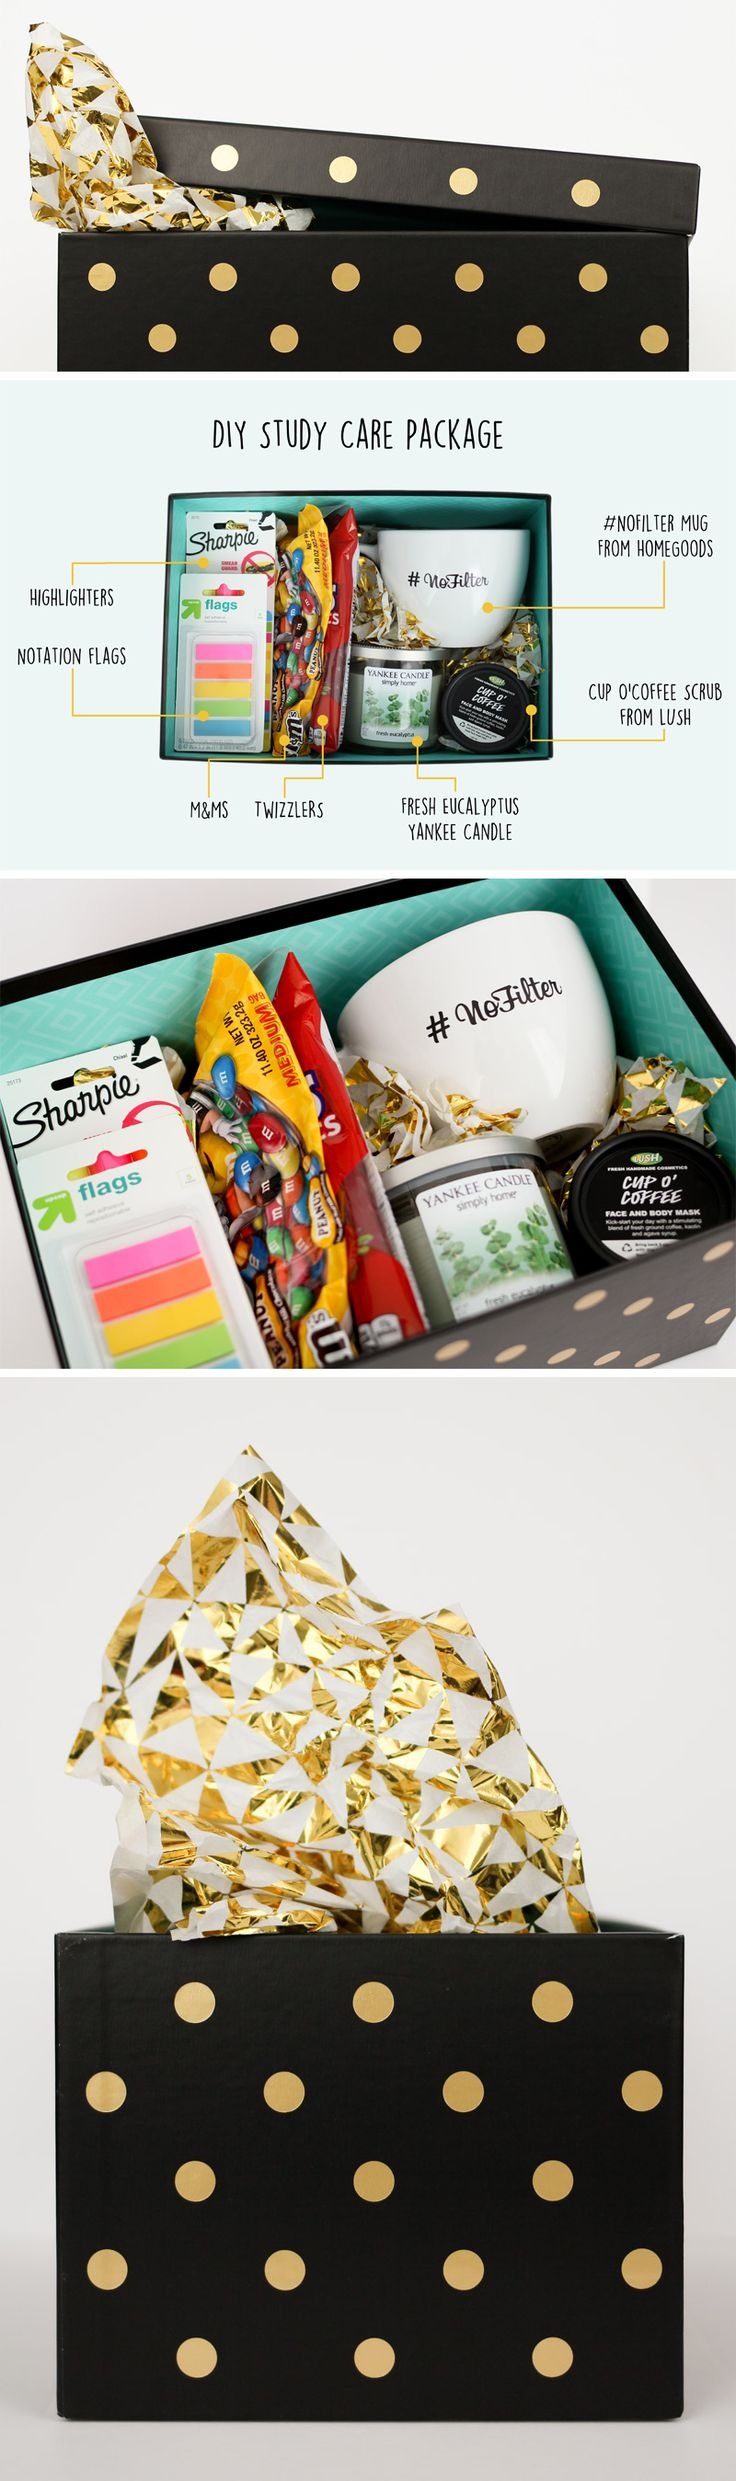 Birthday Gifts Inspiration Our DIY Study Care Package For My